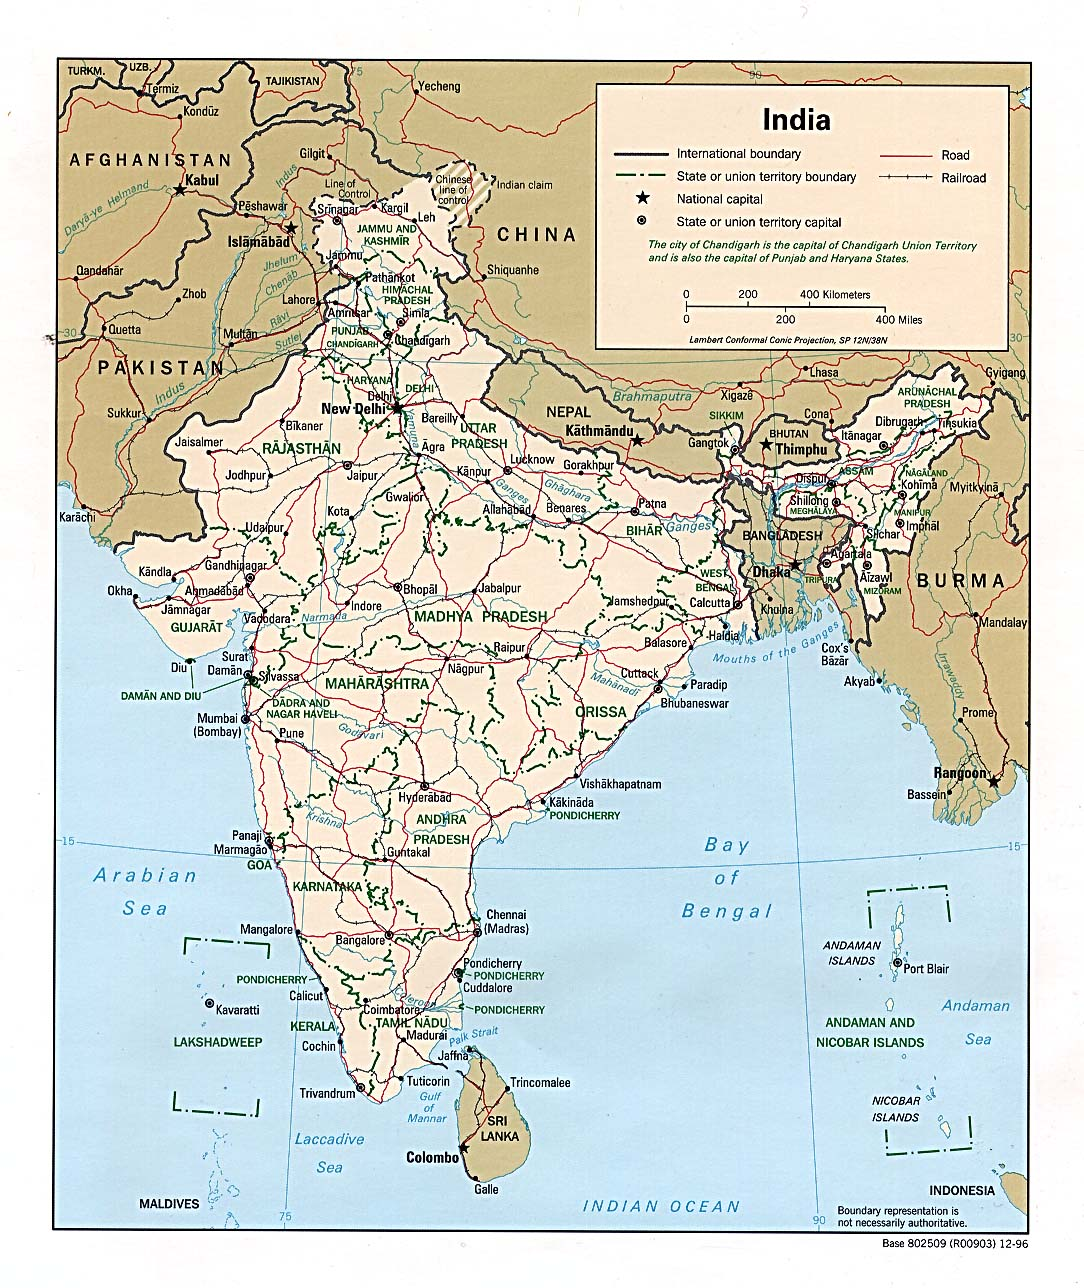 India maps perry castaeda map collection ut library online map collection gumiabroncs Gallery